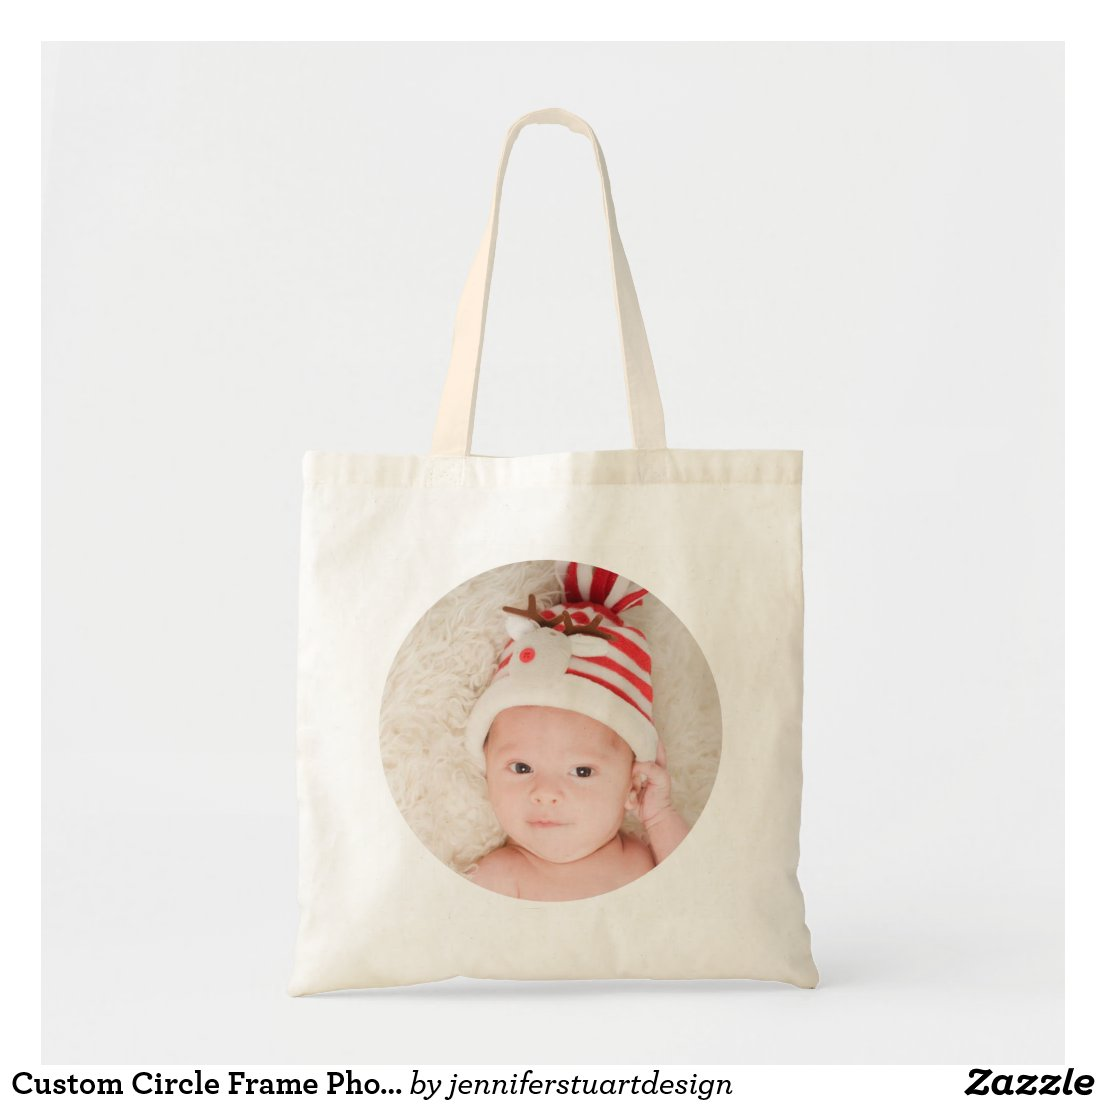 Custom Circle Frame Photo Tote Bag